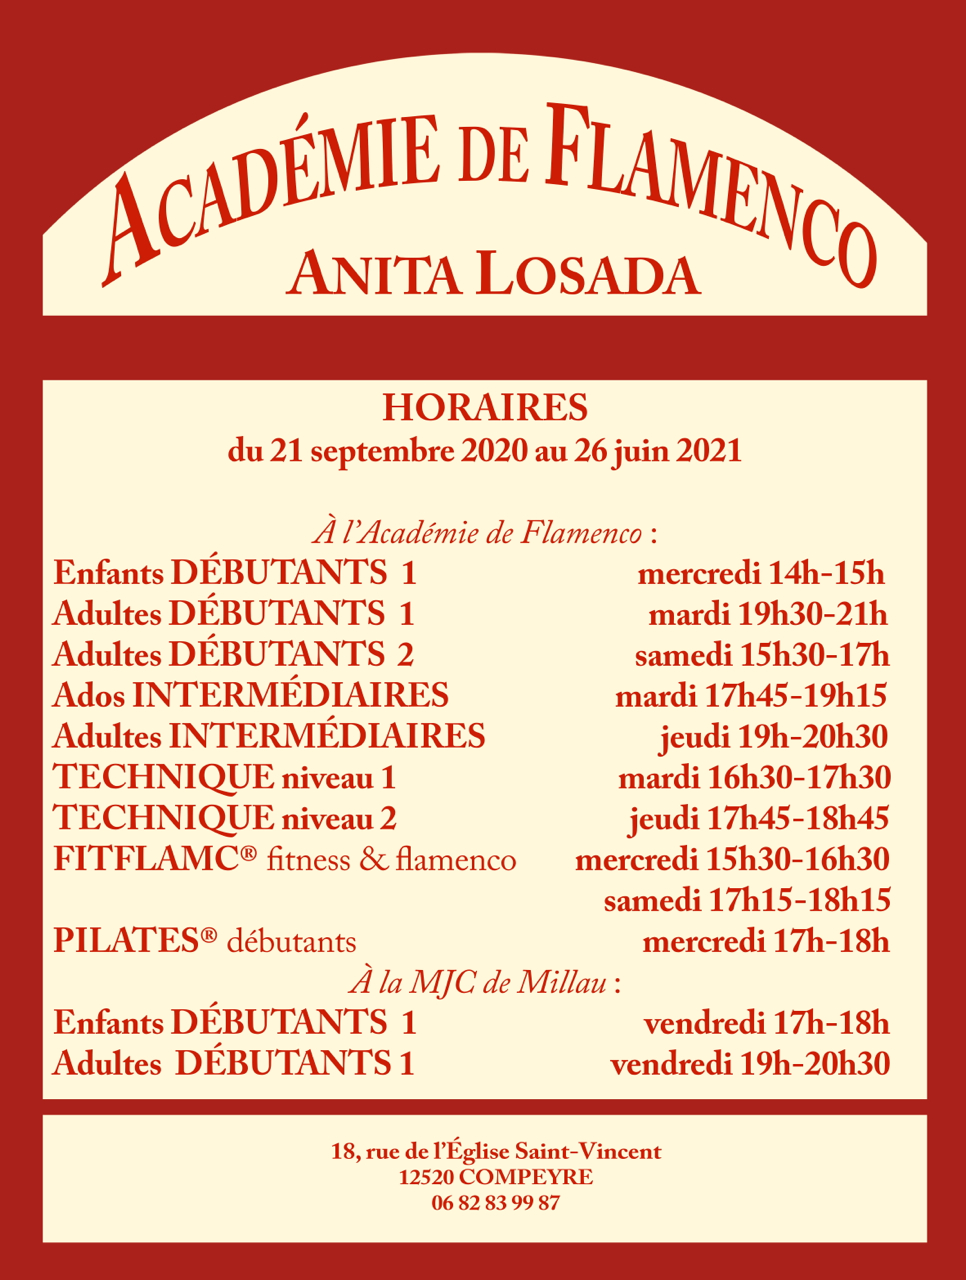 Horaires2021